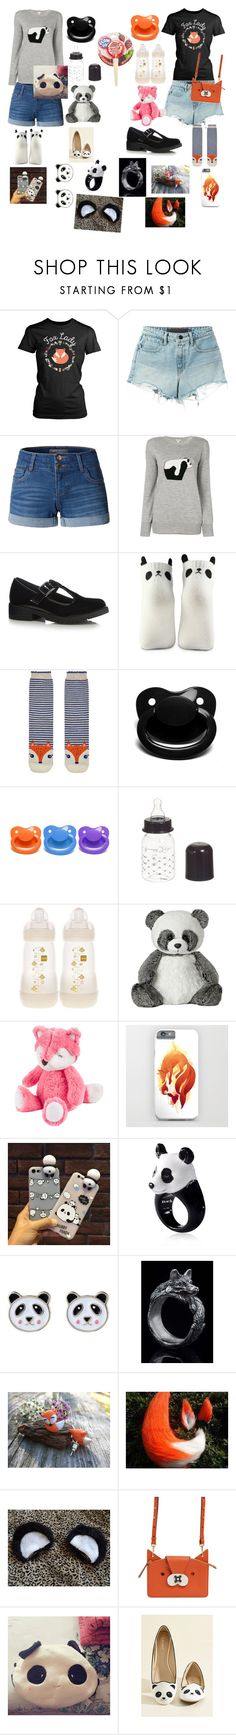 """Daddy's little...panda and fox"" by rainythedarklord ❤ liked on Polyvore featuring T By Alexander Wang, LE3NO, Loewe, Forever 21, Accessorize, Giorgio Armani, Nach and Anya Hindmarch"